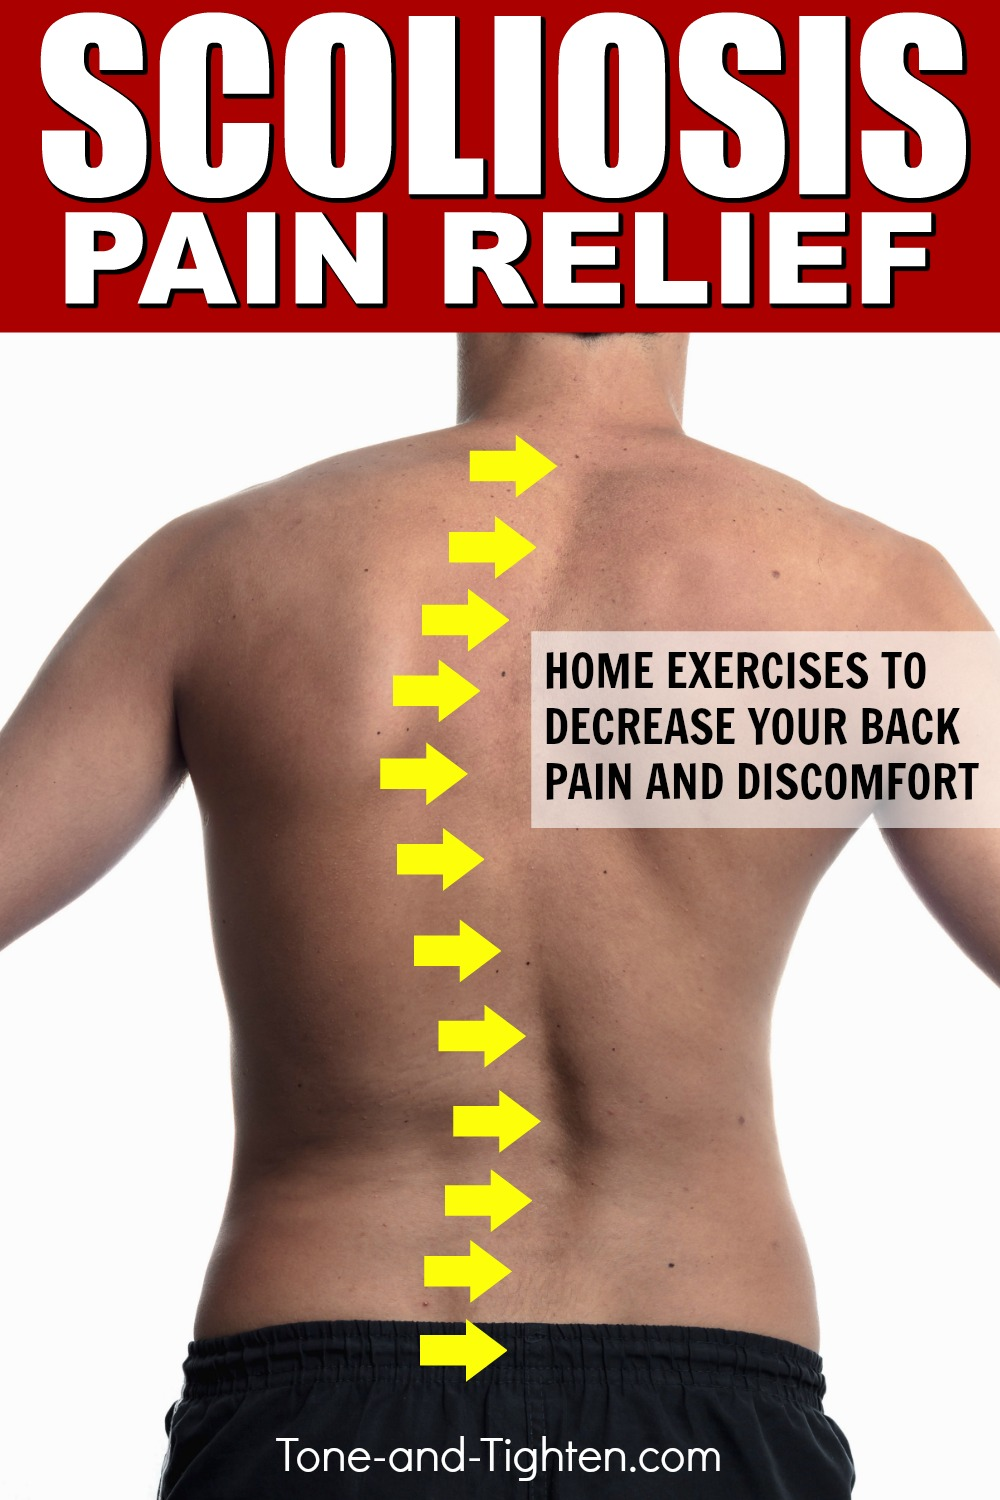 Best exercises to treat scoliosis at home! Physical therapy exercises to help treat your back pain.